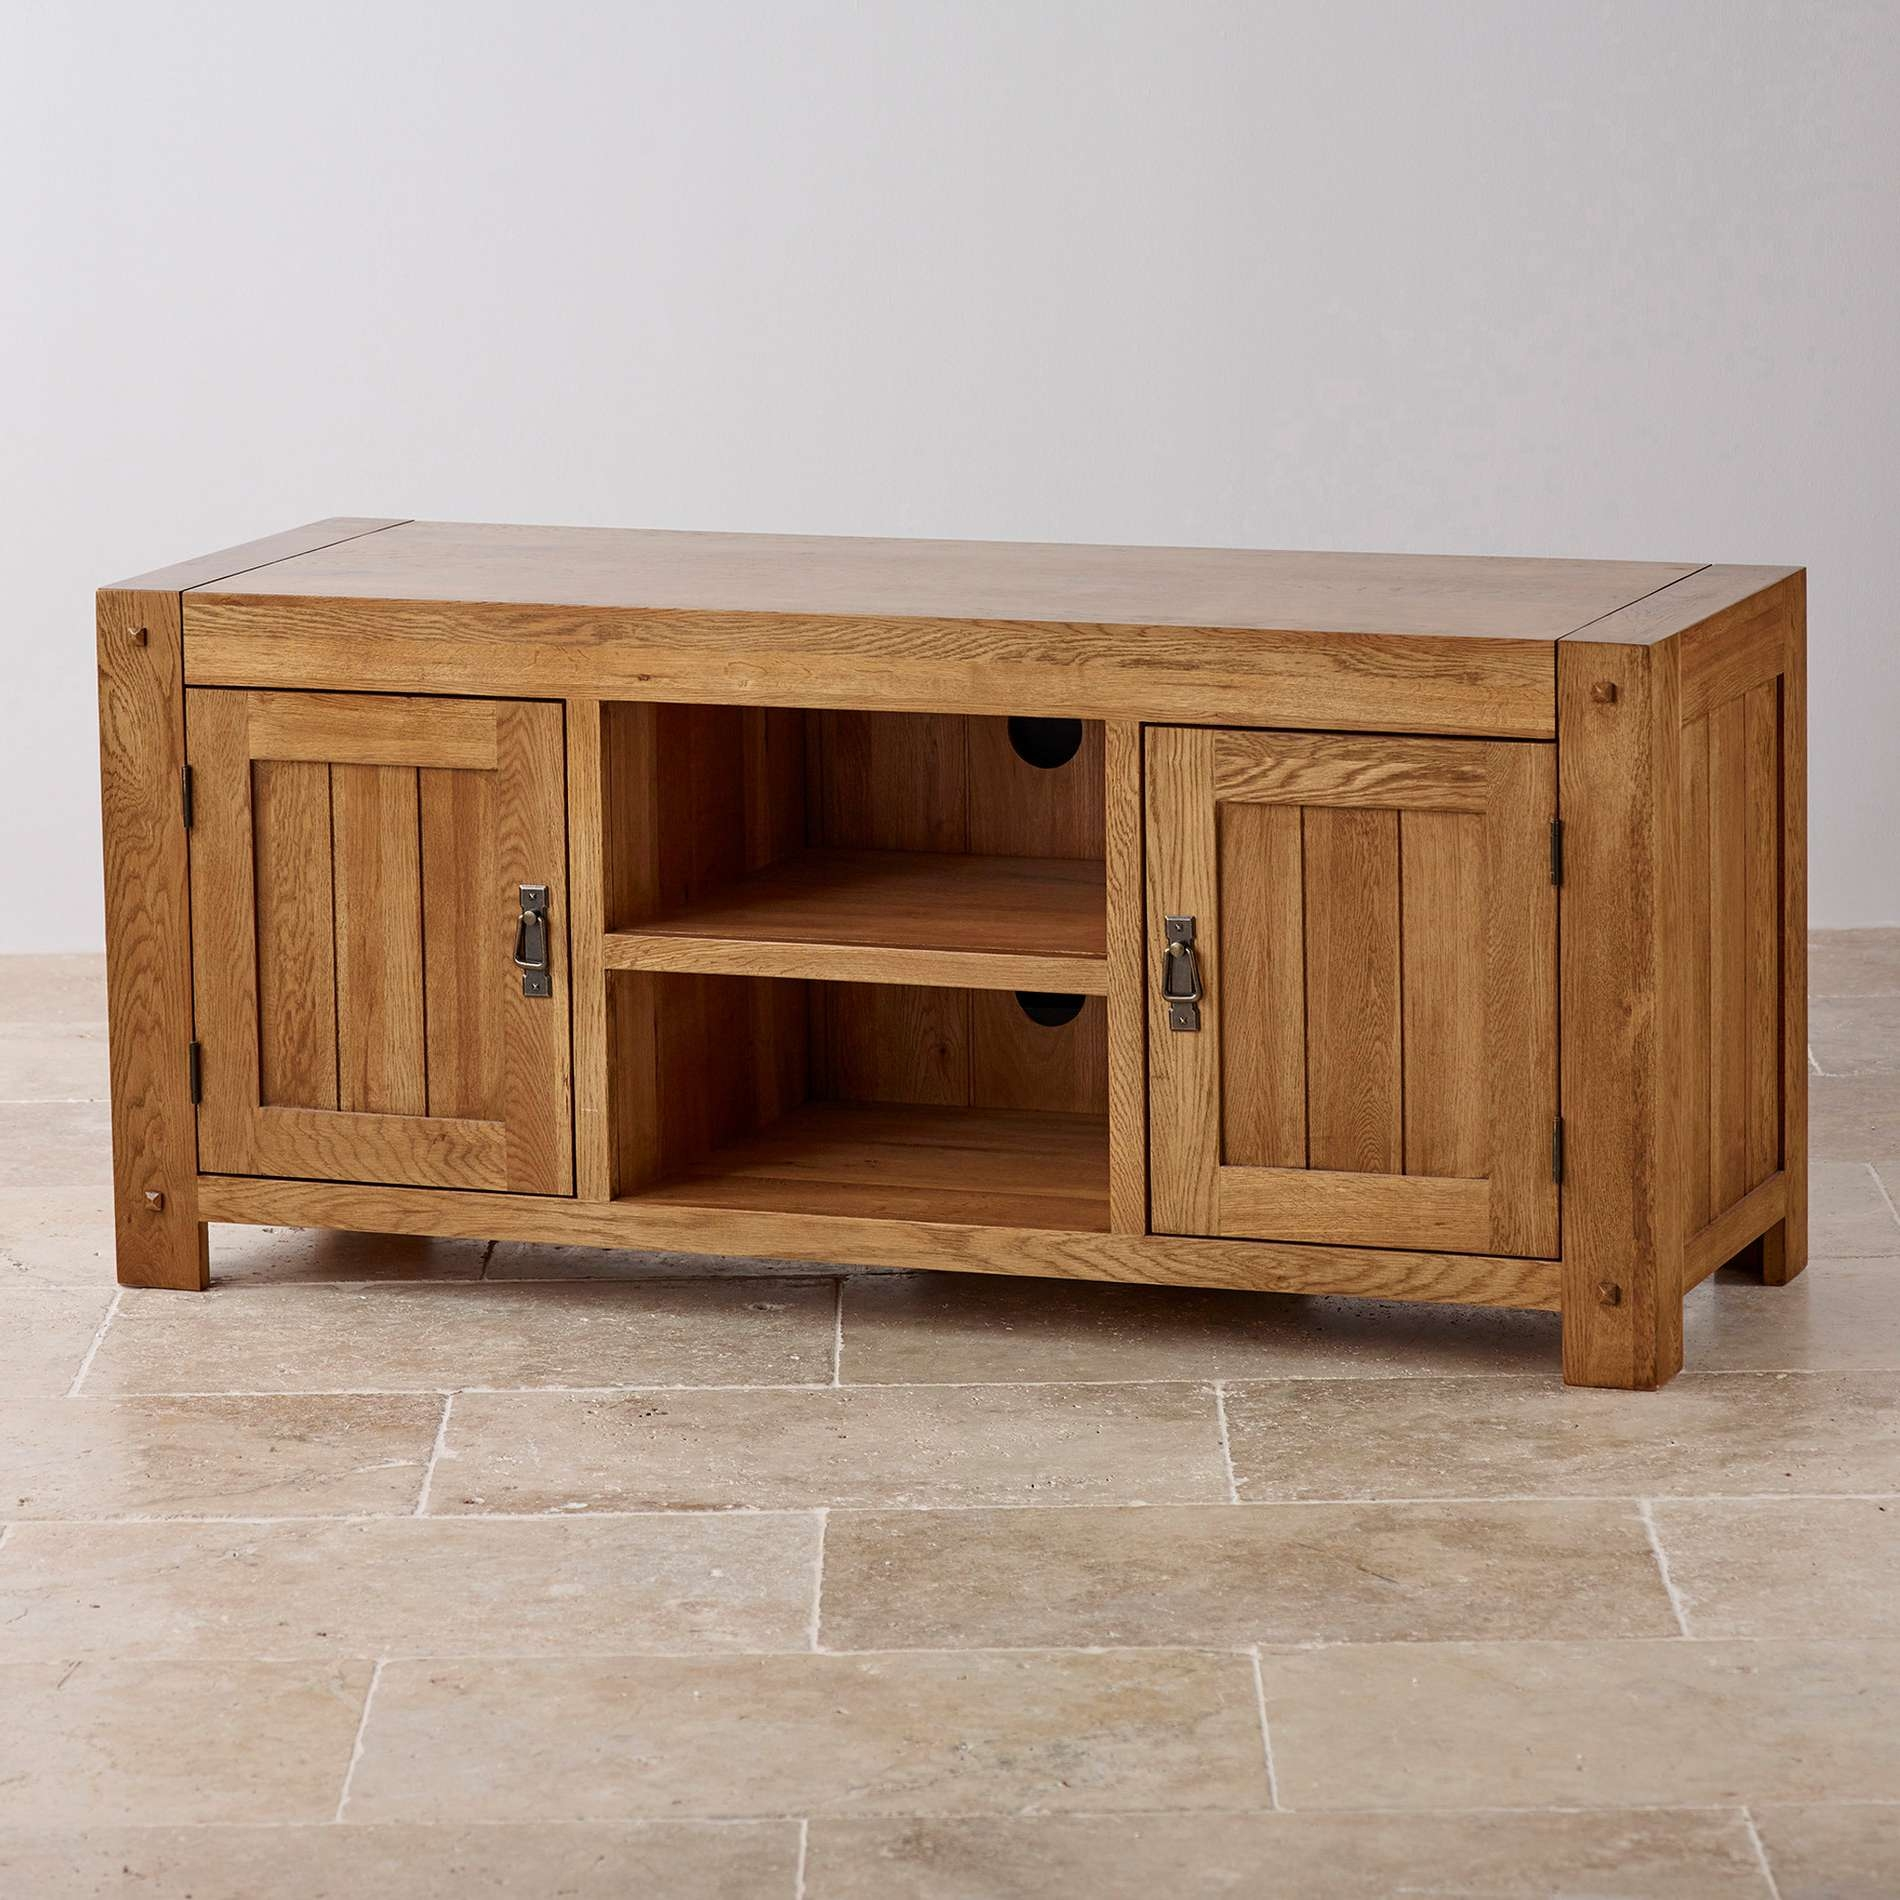 Quercus Wide Tv Cabinet In Rustic Solid Oak | Oak Furniture Land Regarding Oak Tv Cabinets (View 11 of 20)